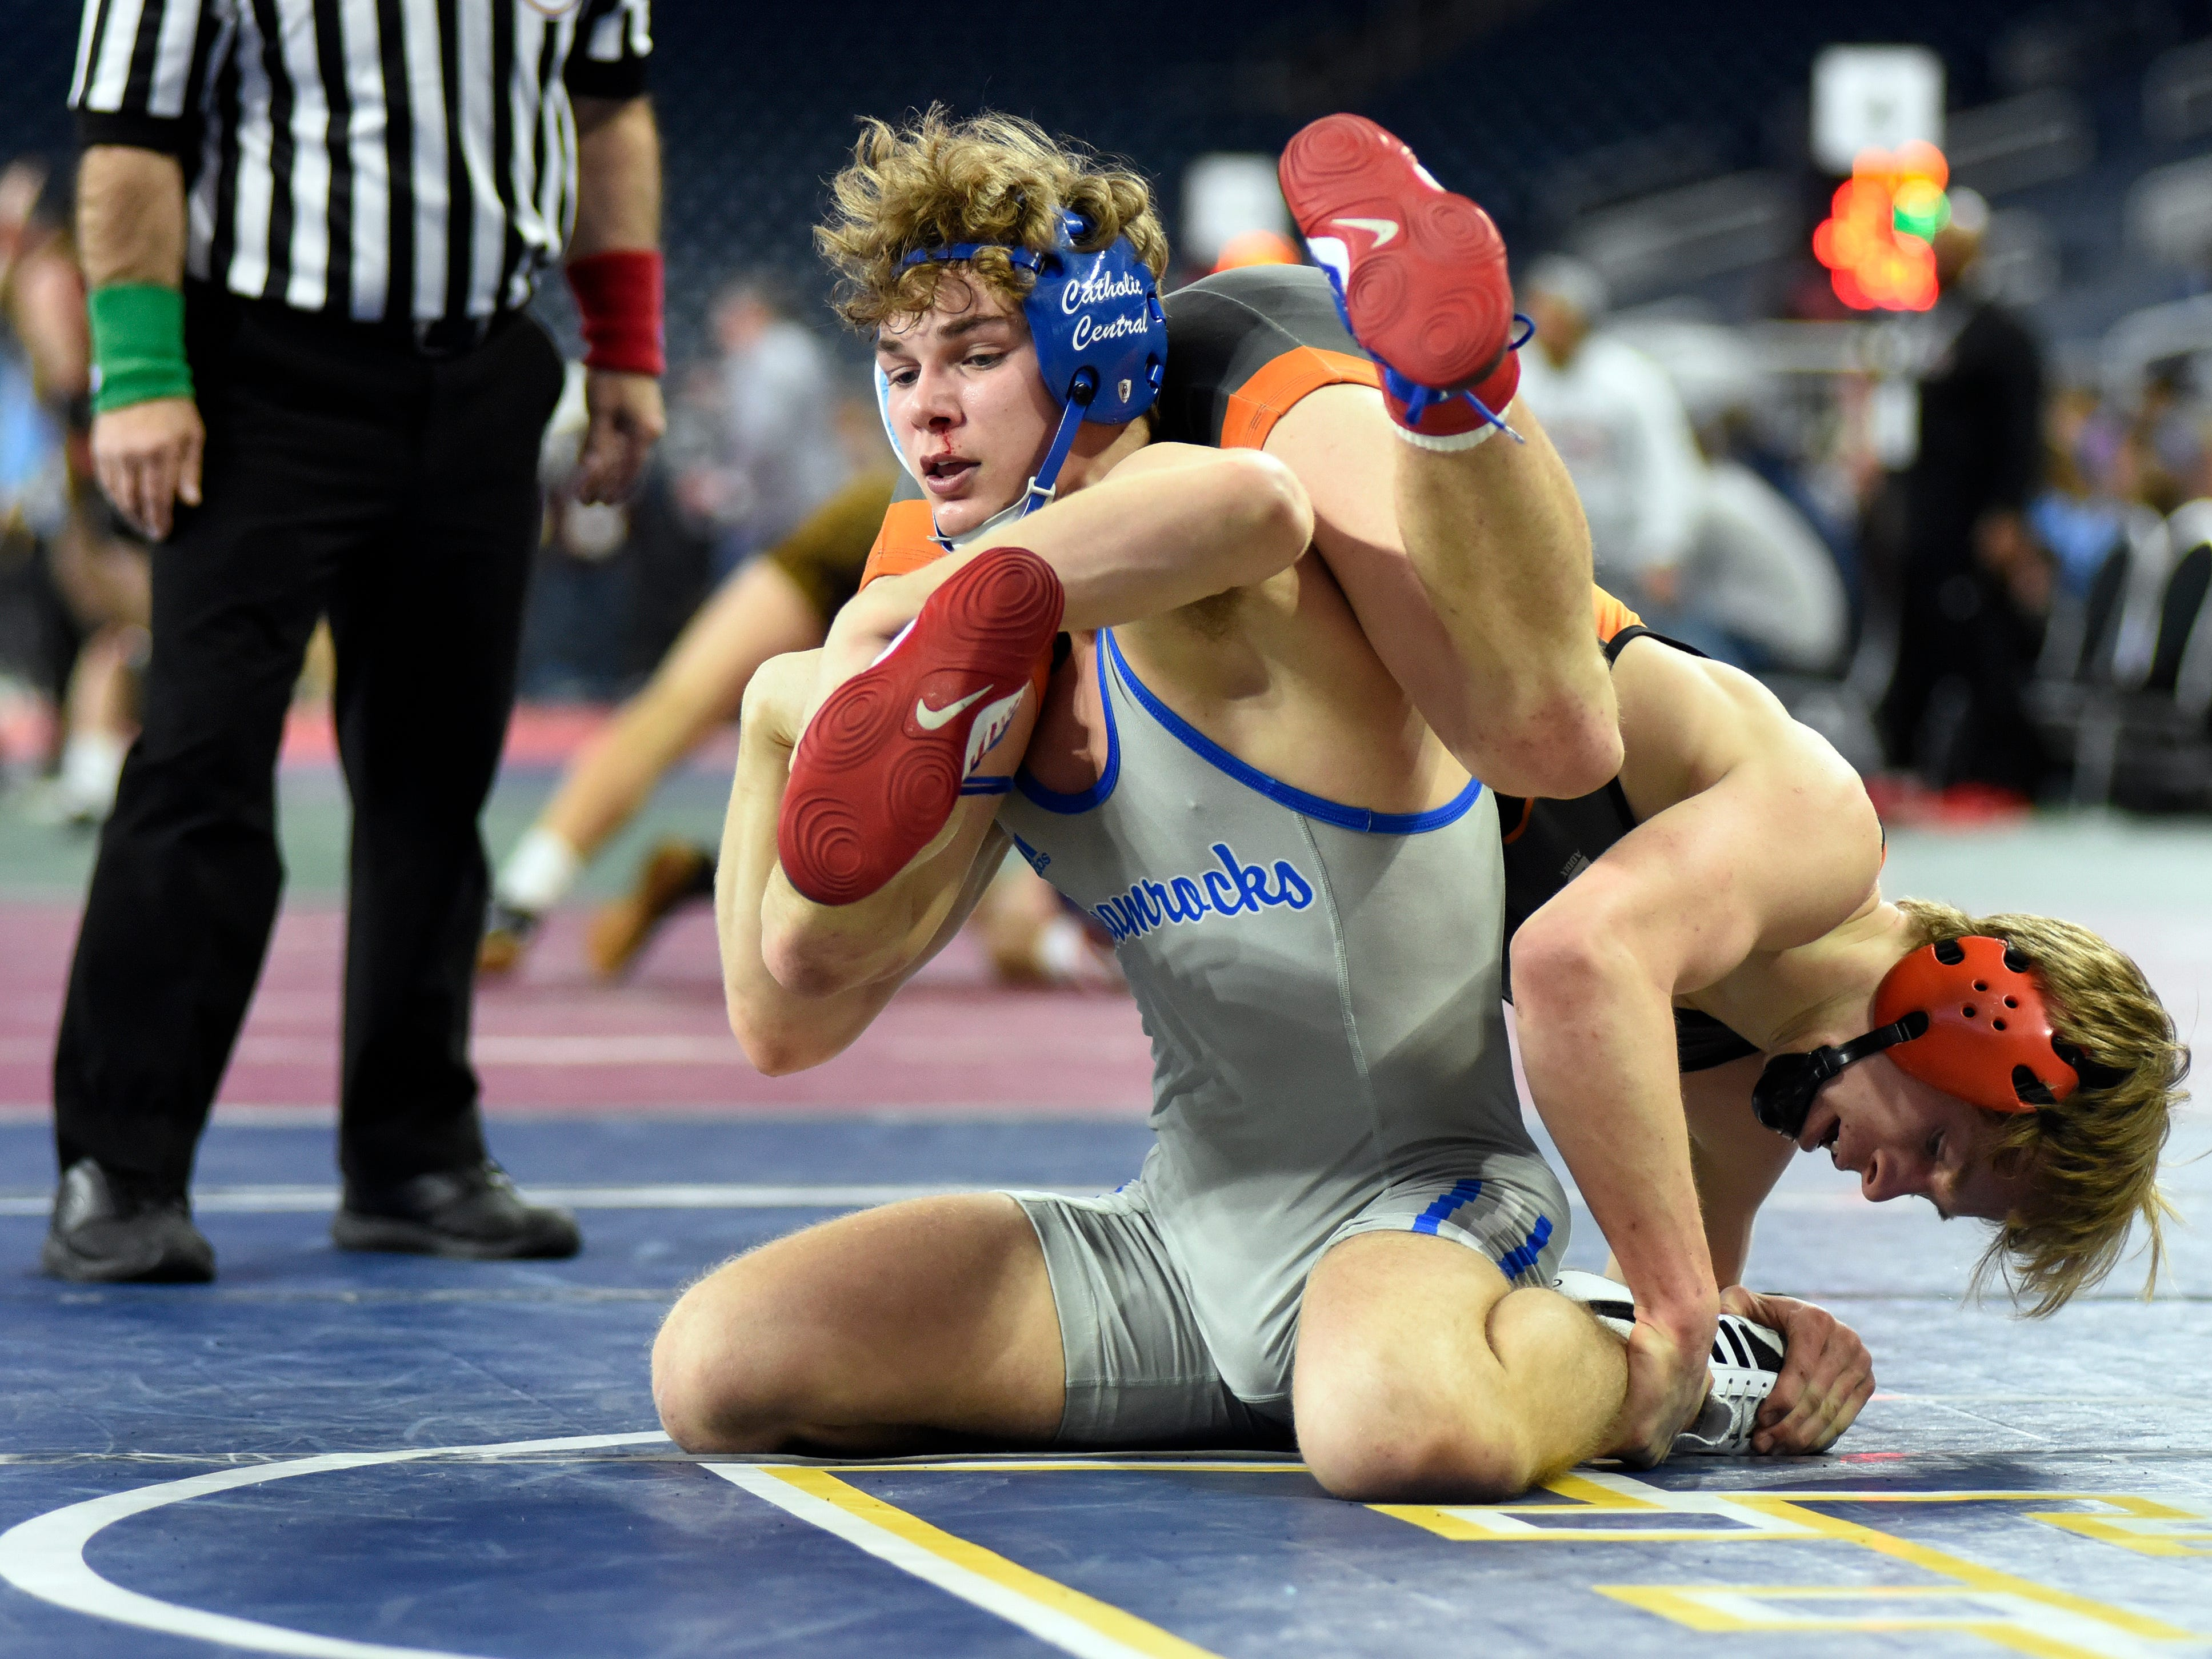 Marc Shaeffer of Detroit Catholic Central, left, wrestles Connor White of Rockford at 140 pounds, Friday, Mar. 1, 2019 during the MHSAA wrestling quarterfinals held at Ford Field in Detroit.  Shaeffer won by decision over White.